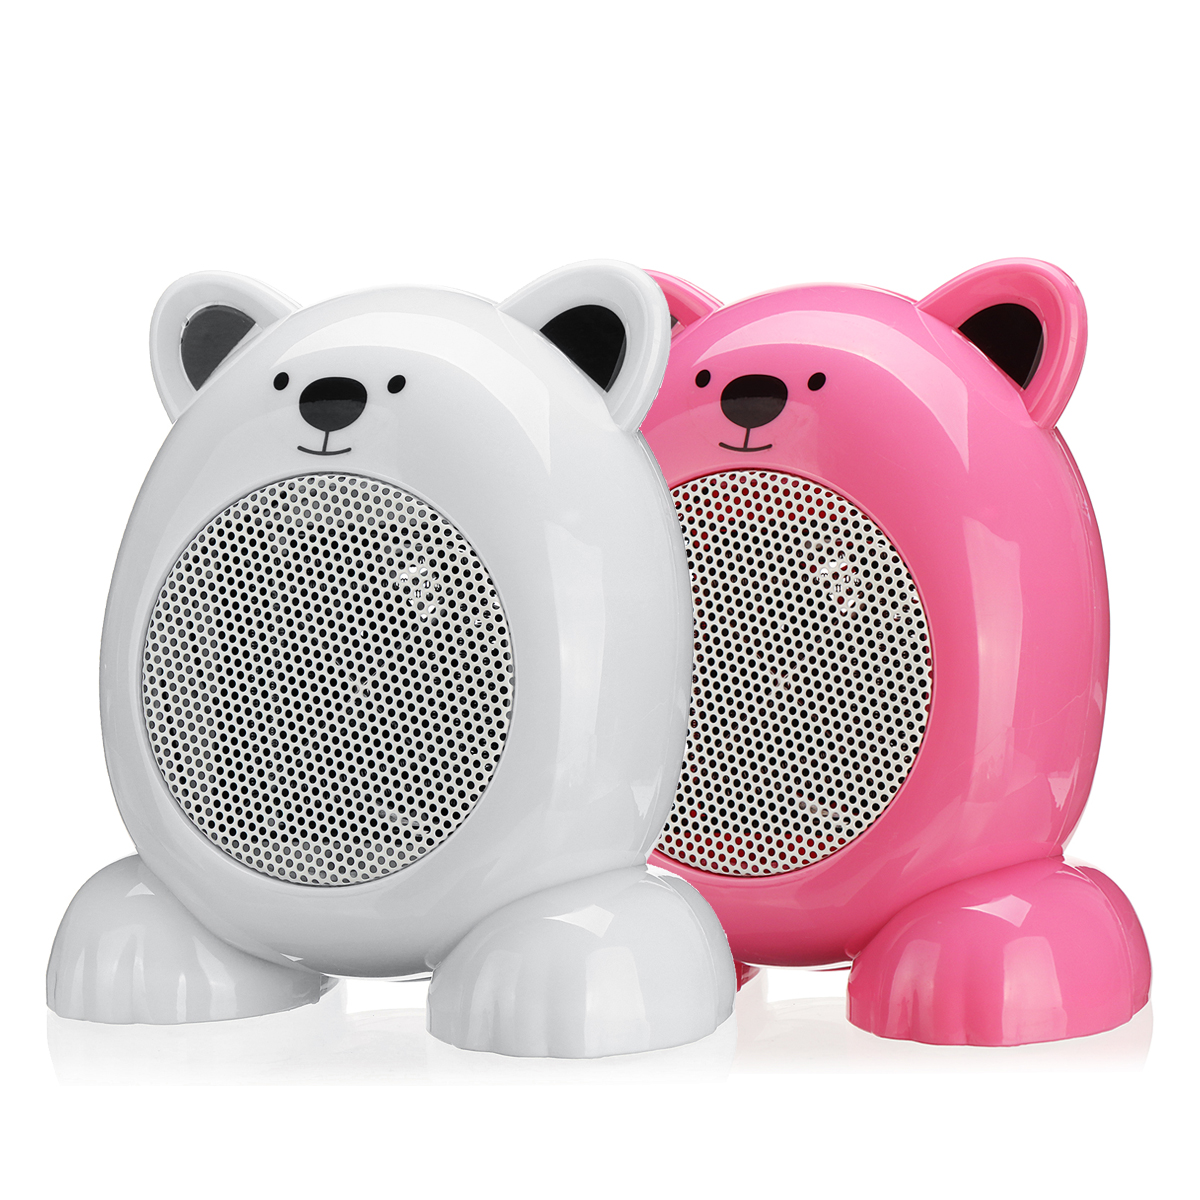 220V 360W Cartoon Bear Style Heater Fan Portable Mini Silencer Electric Heater Fan